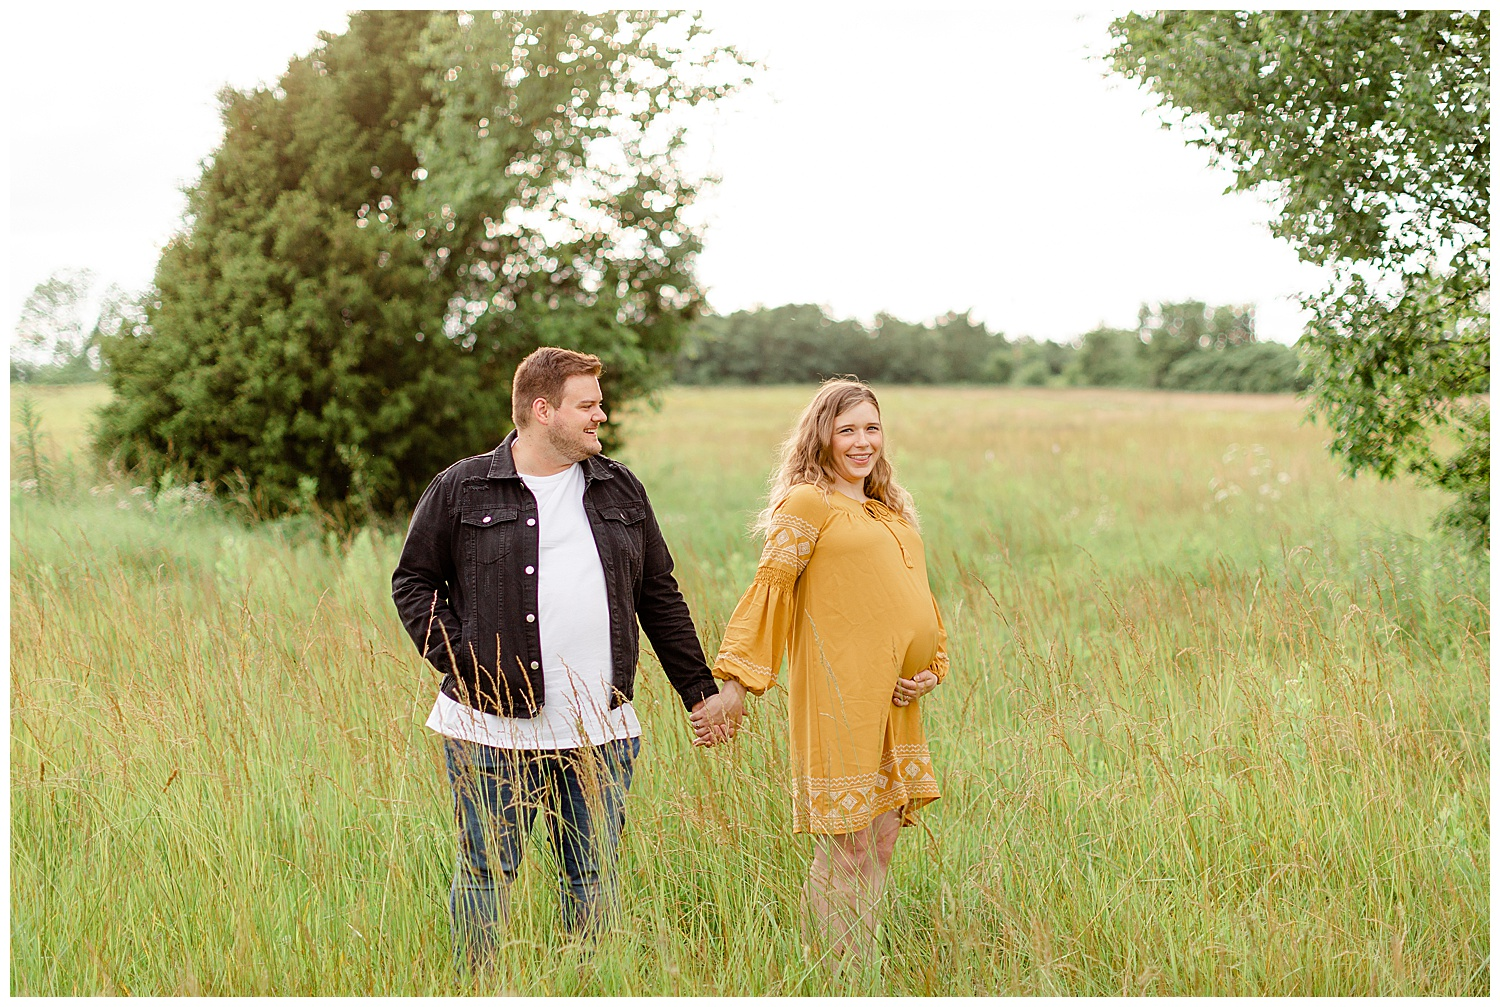 Tulsa maternity photographer